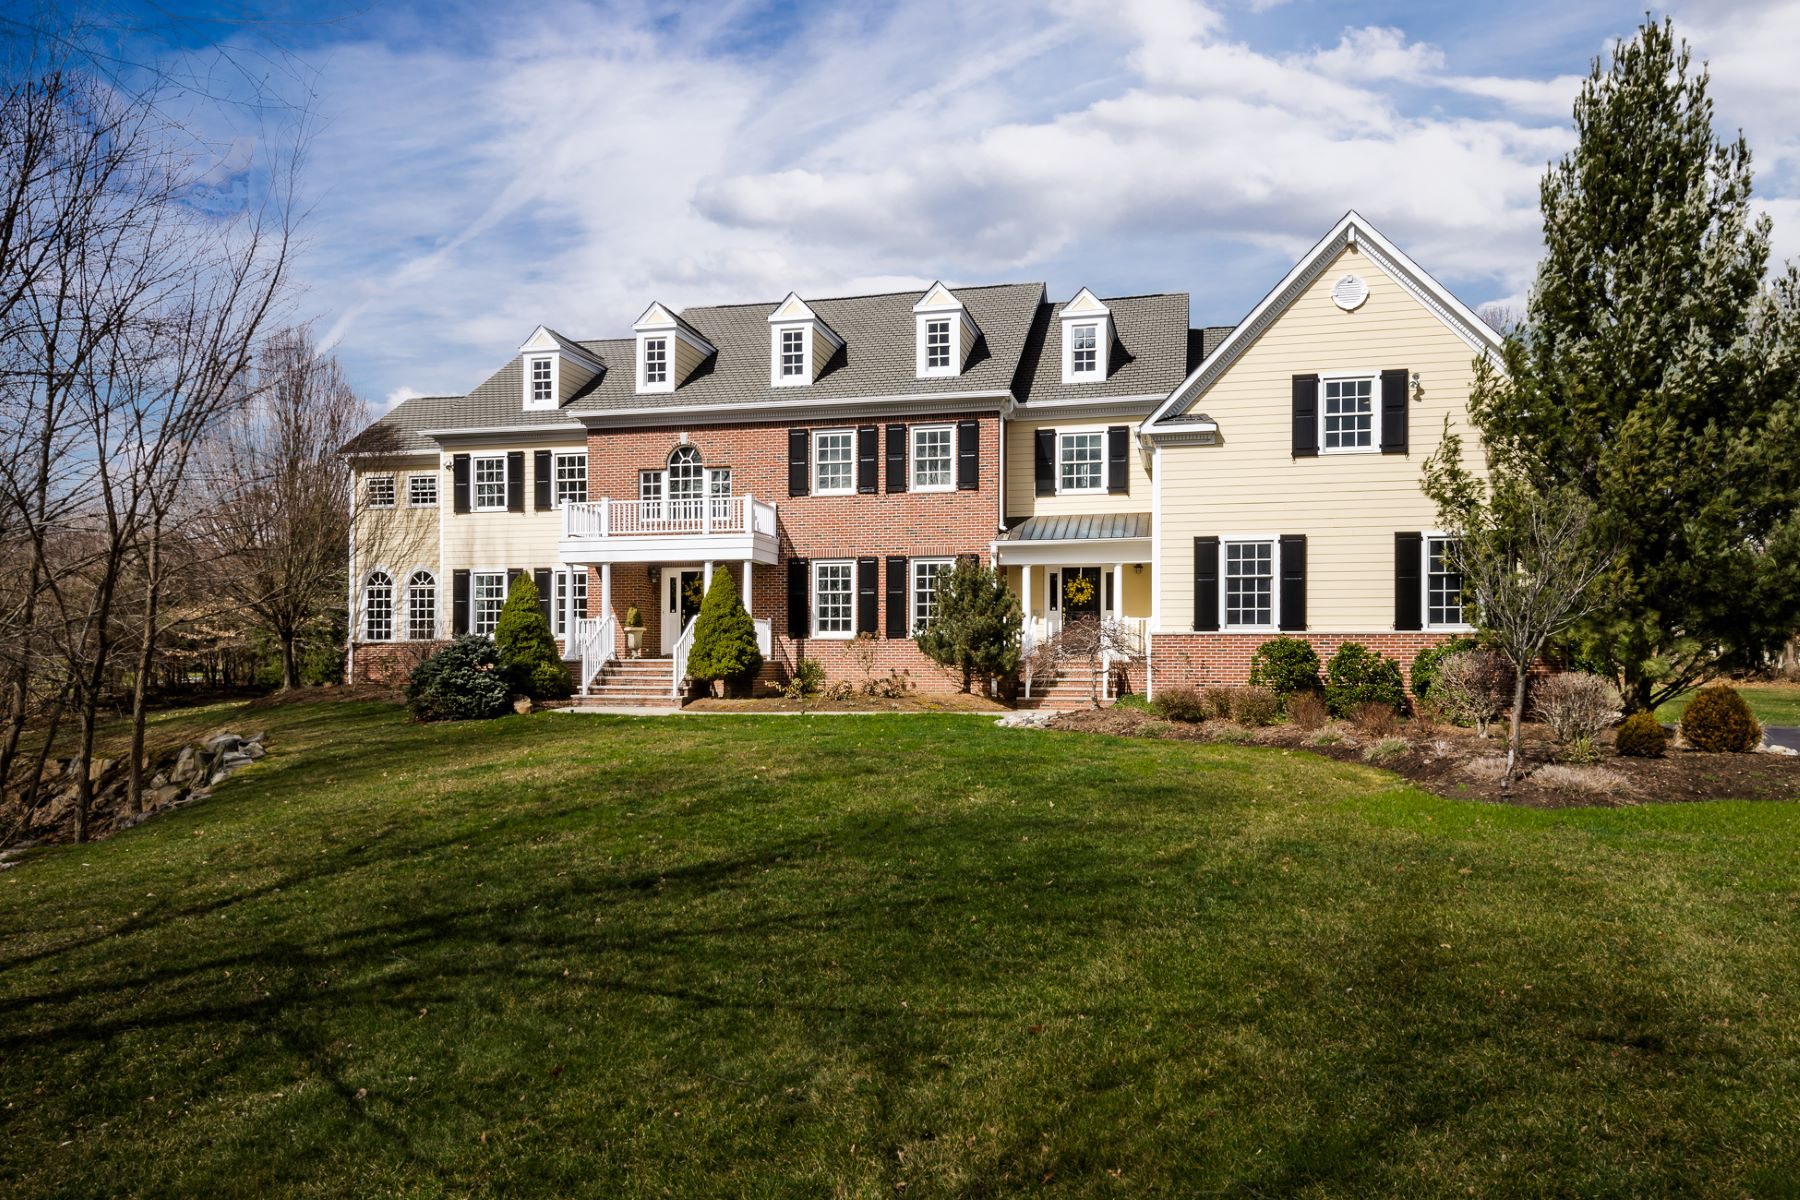 Maison unifamiliale pour l Vente à Start Your Search Here - Montgomery Township 48 High Ridge Road Skillman, New Jersey 08558 États-Unis